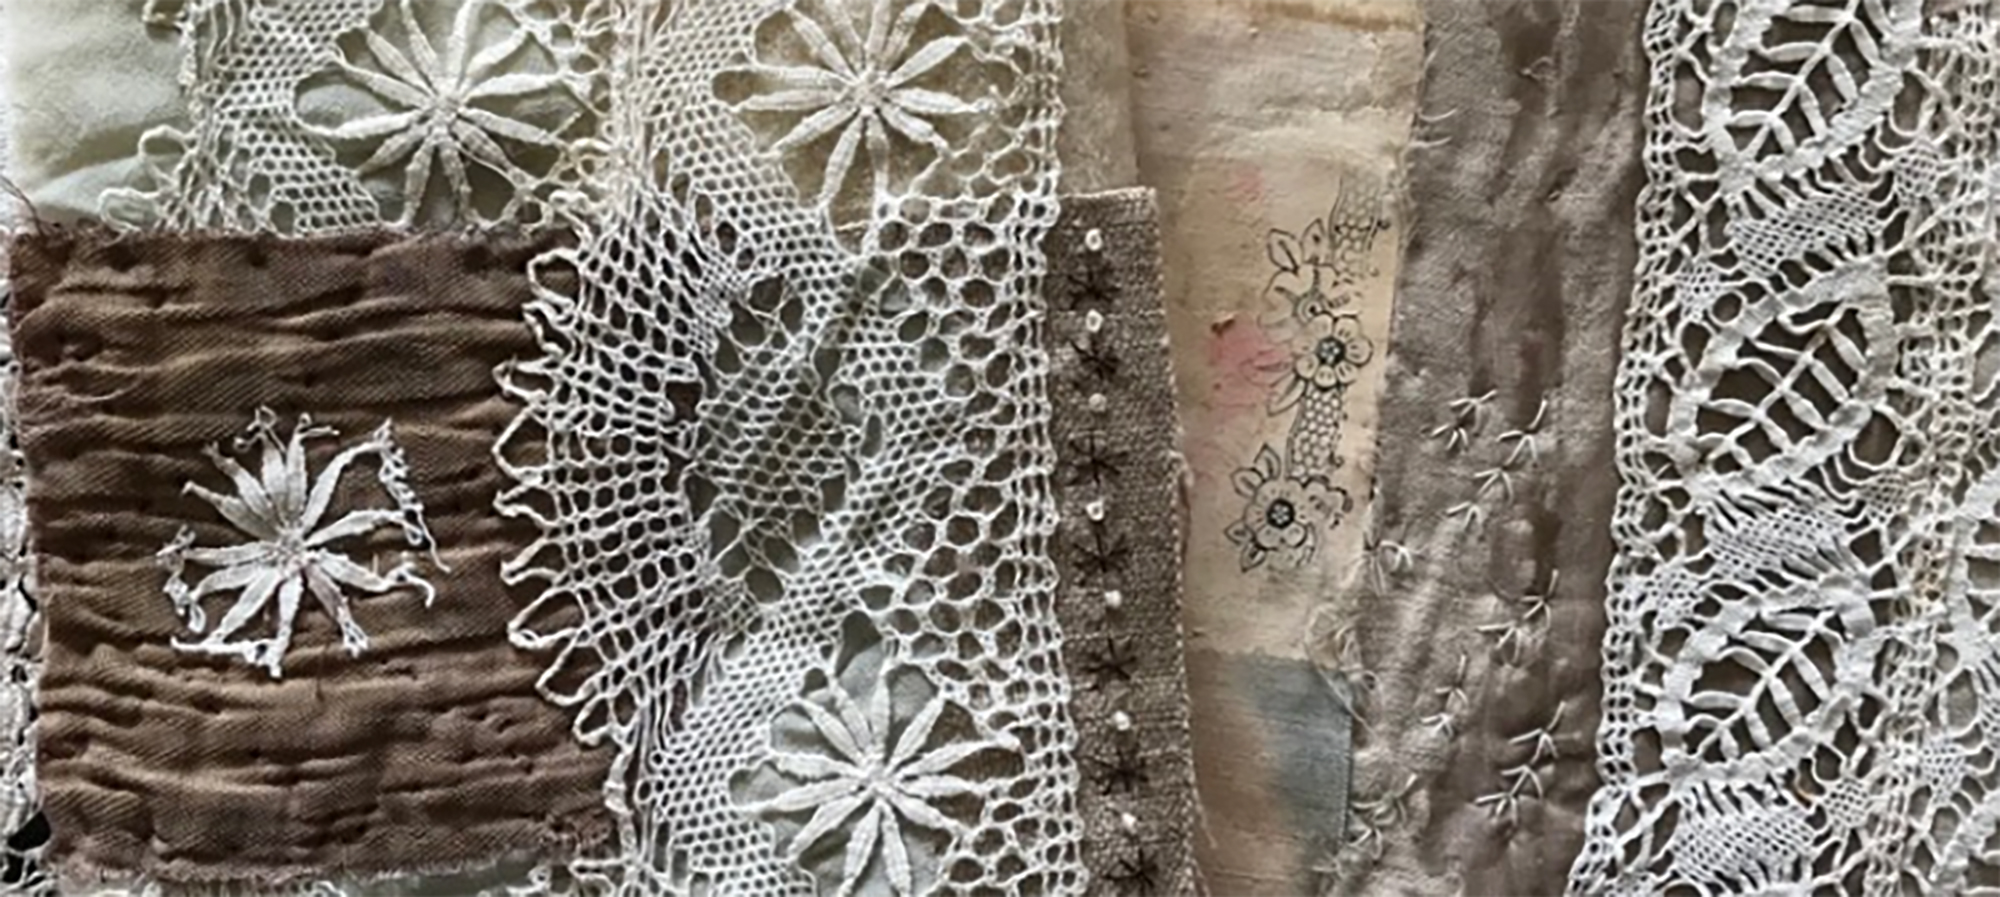 Lace Books with Mandy Pattullo